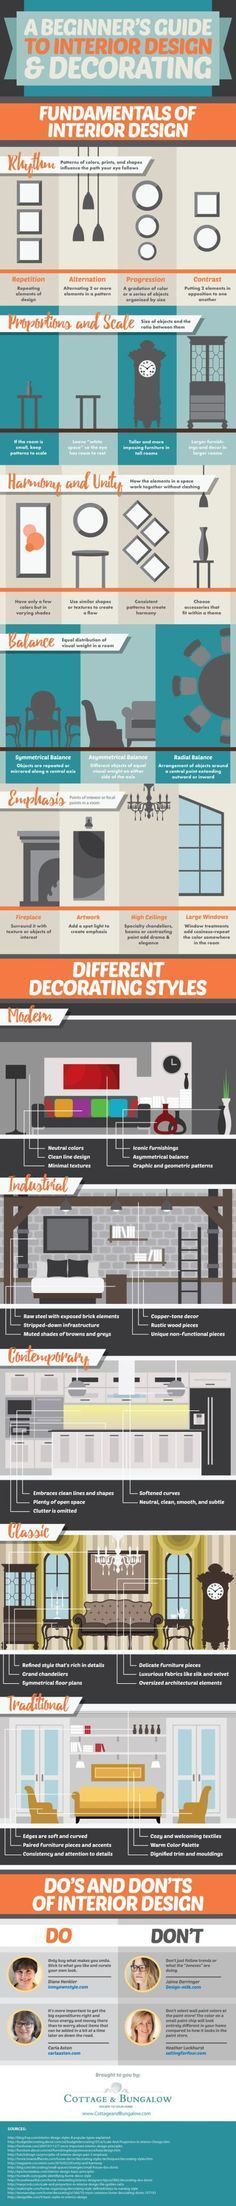 Design Advice: Do's and Don'ts Every Beginner Should Know Awesome tips! The Beginner's Guide to Interior Design and Decorating! Awesome tips! The Beginner's Guide to Interior Design and Decorating! Interior Design Minimalist, Interior Design Advice, Decor Interior Design, Furniture Design, Interior Decorating, Interior Design For Beginners, Interior Modern, Principles Of Interior Design, Modern Decor